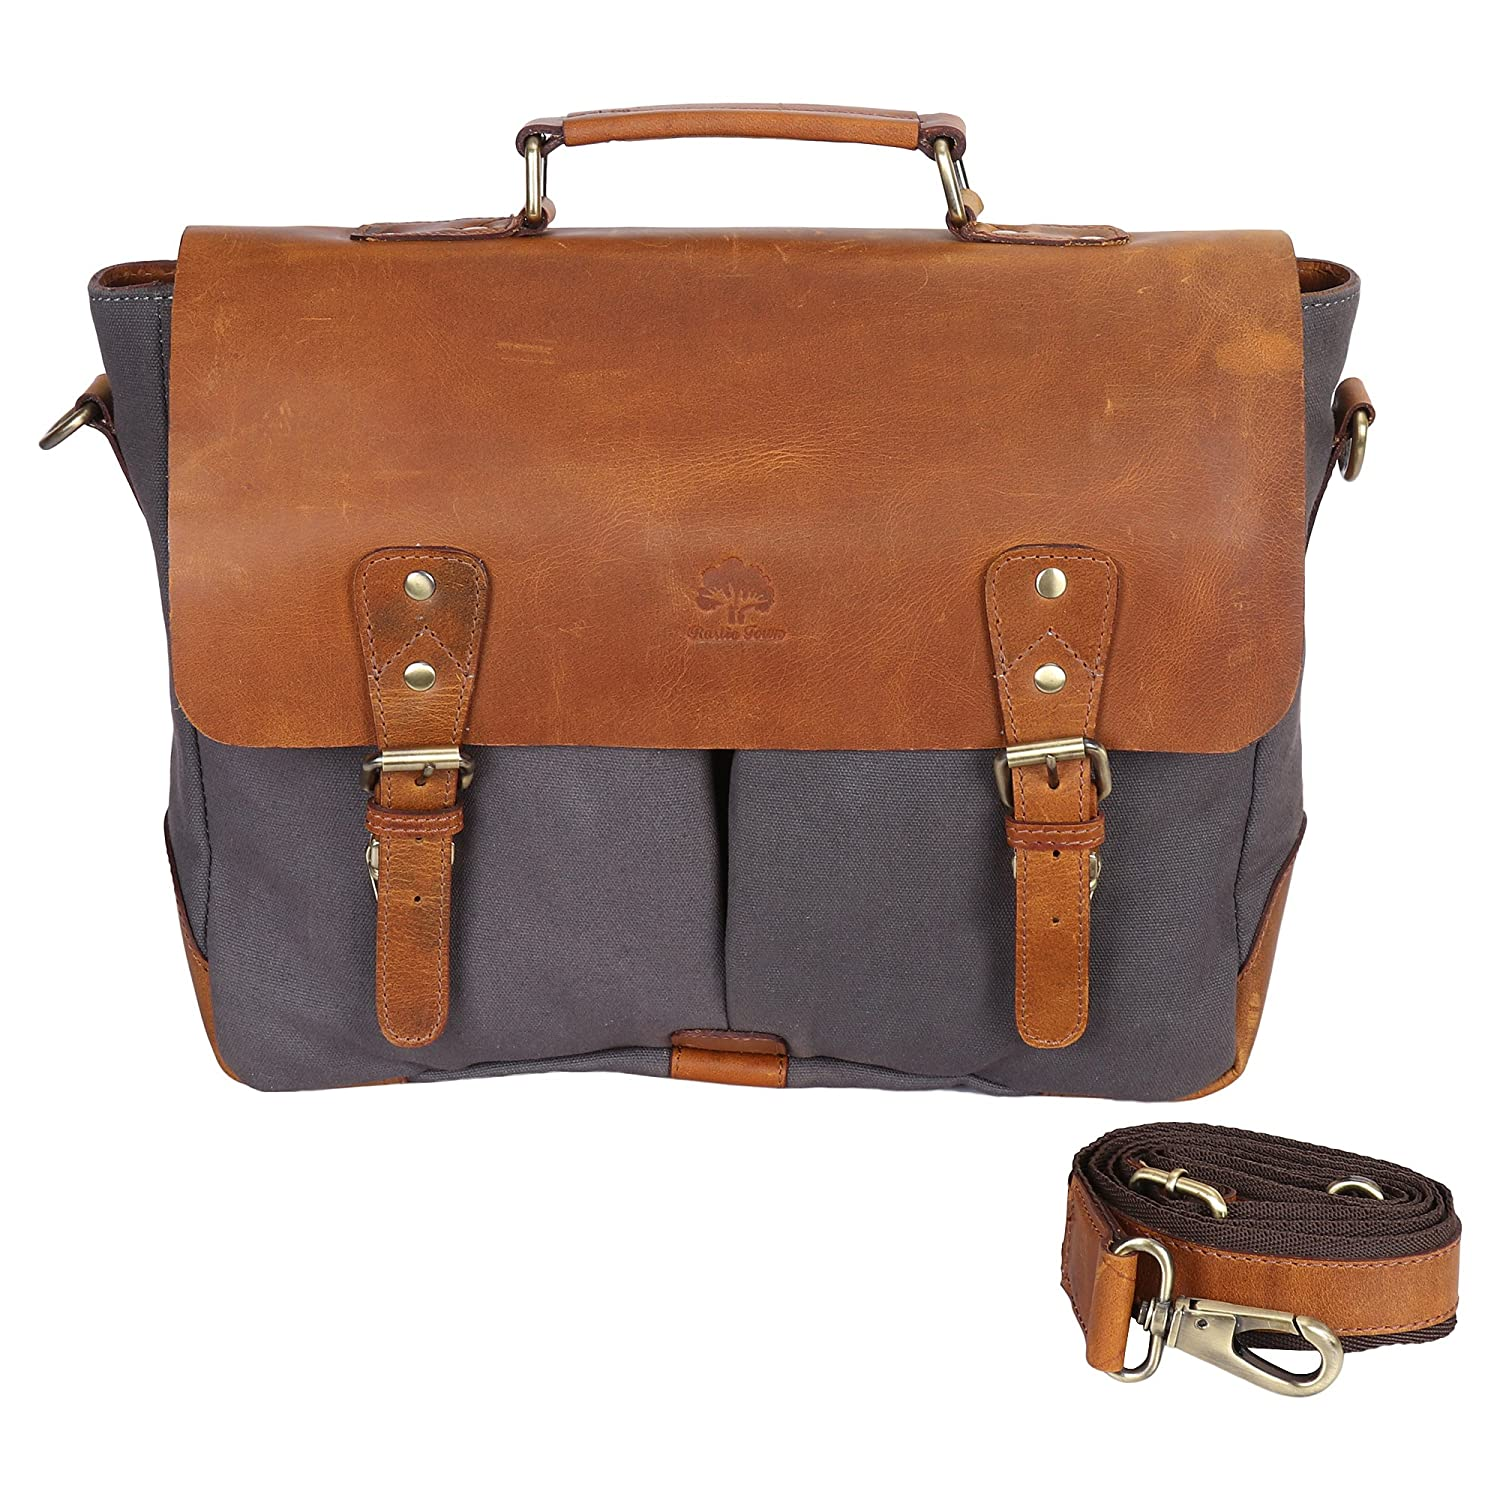 c8f8a0689b Amazon.com  Rustic Town Leather Messenger Bag for Men Women Travel Work ~  Carry Laptop Computer Books ~ Everyday Office College School Satchel 15  inch  ...